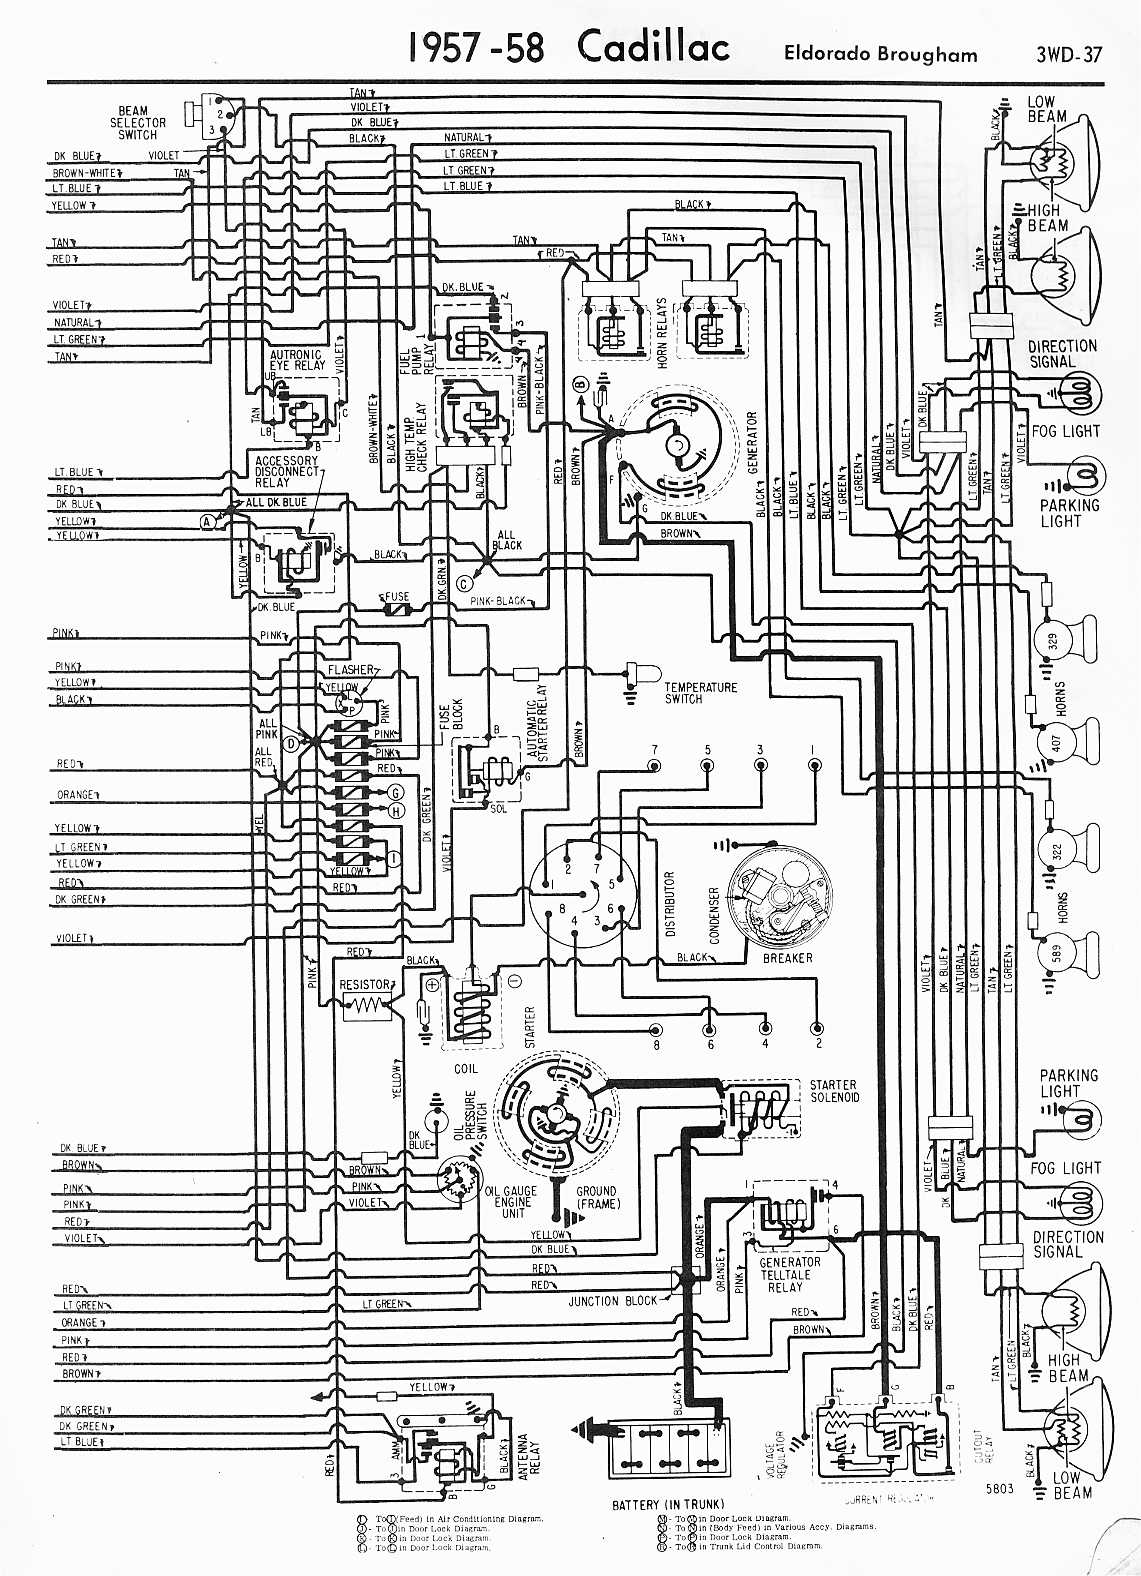 hight resolution of cadillac wiring diagrams 1957 1965 1957 58 eldorado brougham right